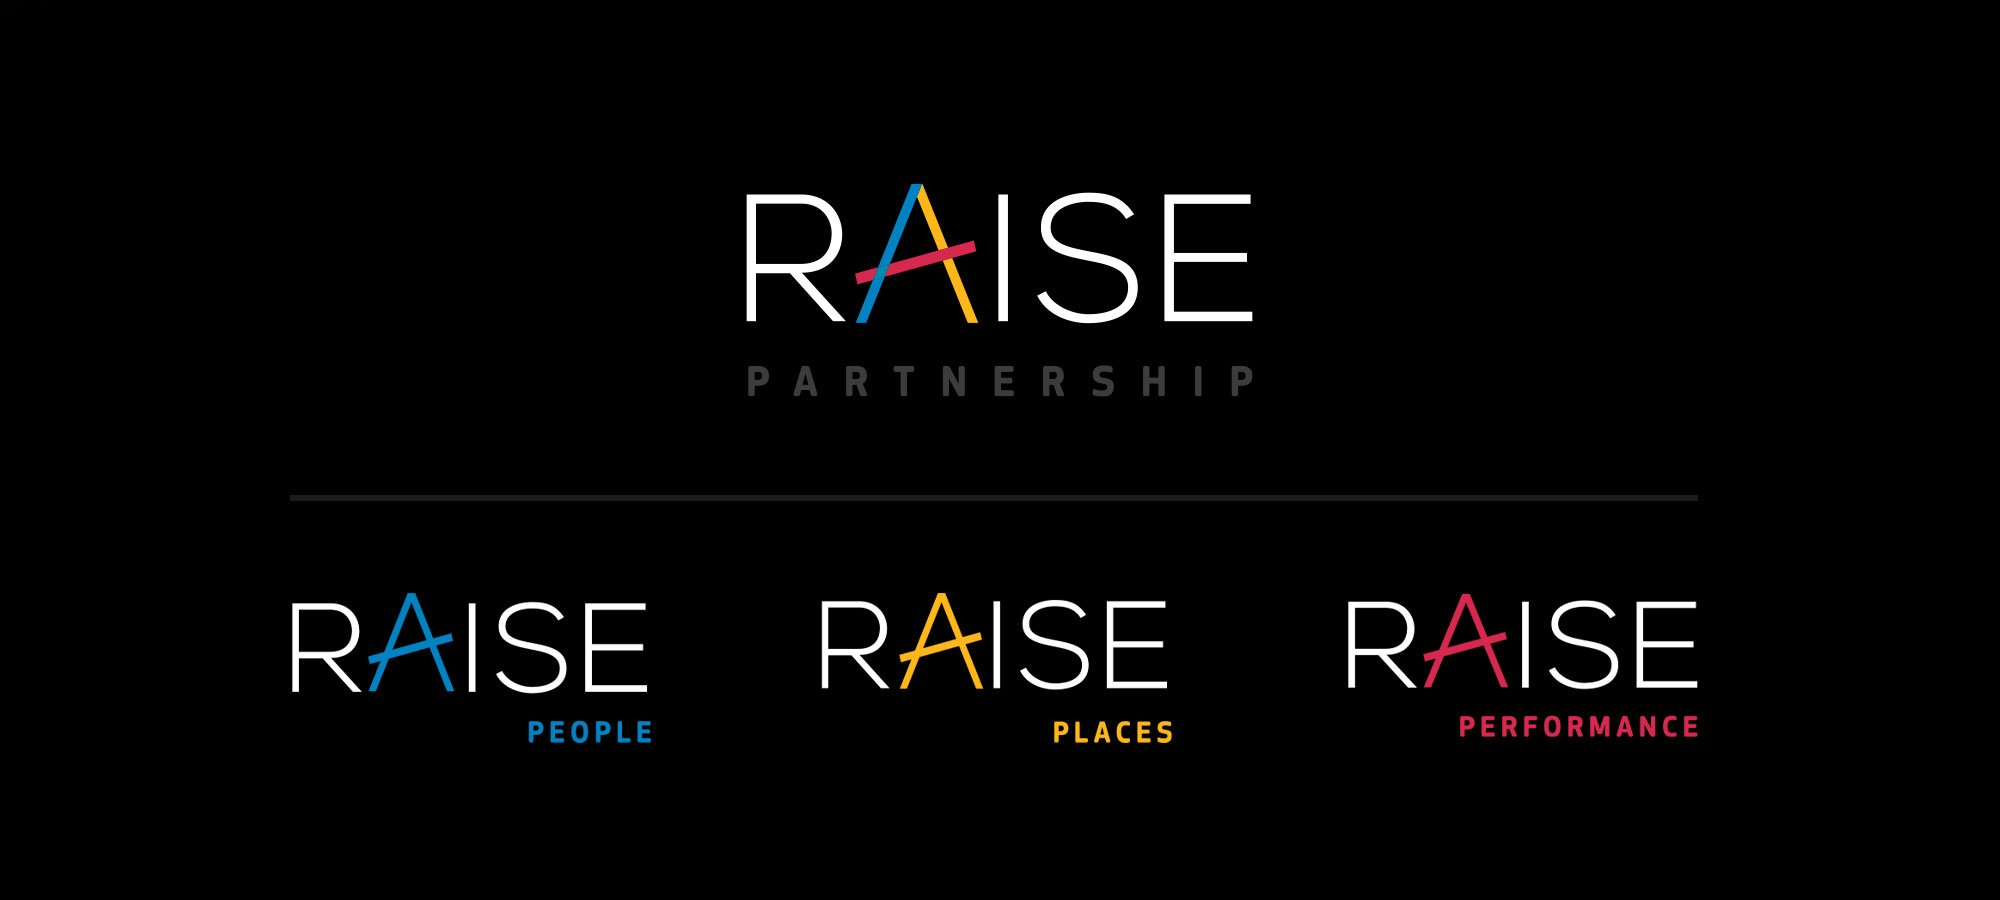 Raise Partnership full set of logos